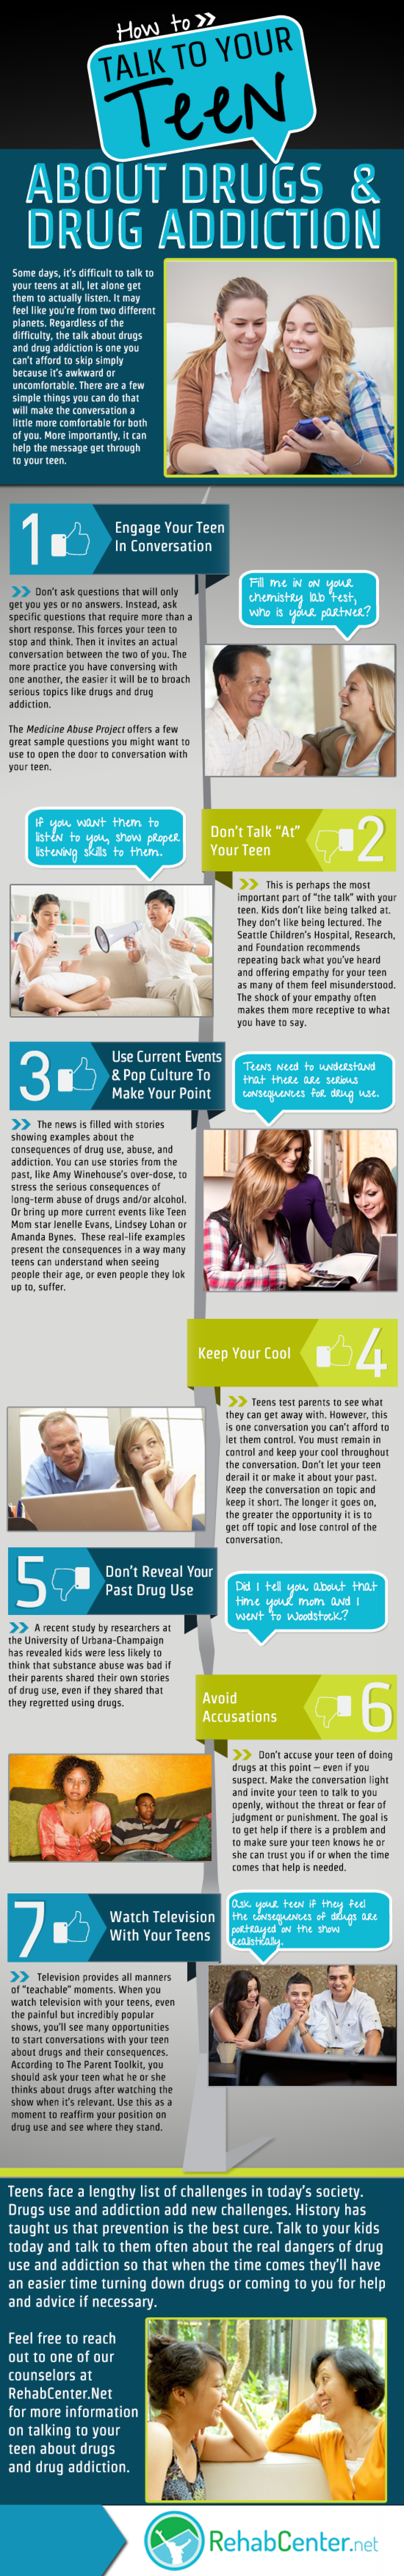 How to Talk to Your Teen About Drugs & Drug Addiction Infographic